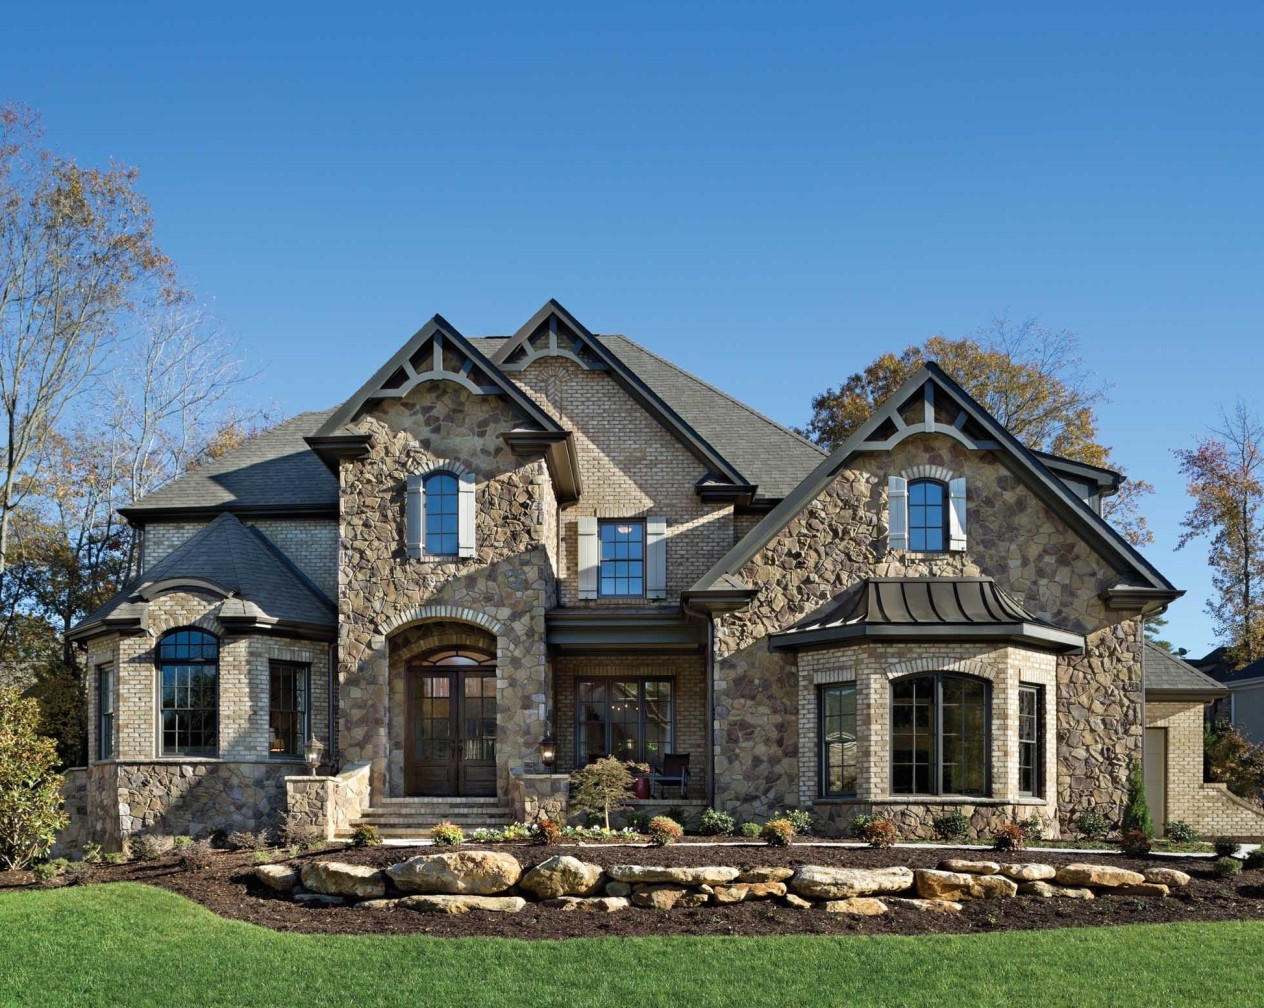 Roofing Specialists in Waxhaw, Charlotte NC, roofing in charlotte, residential roofing contractors, quality roofers